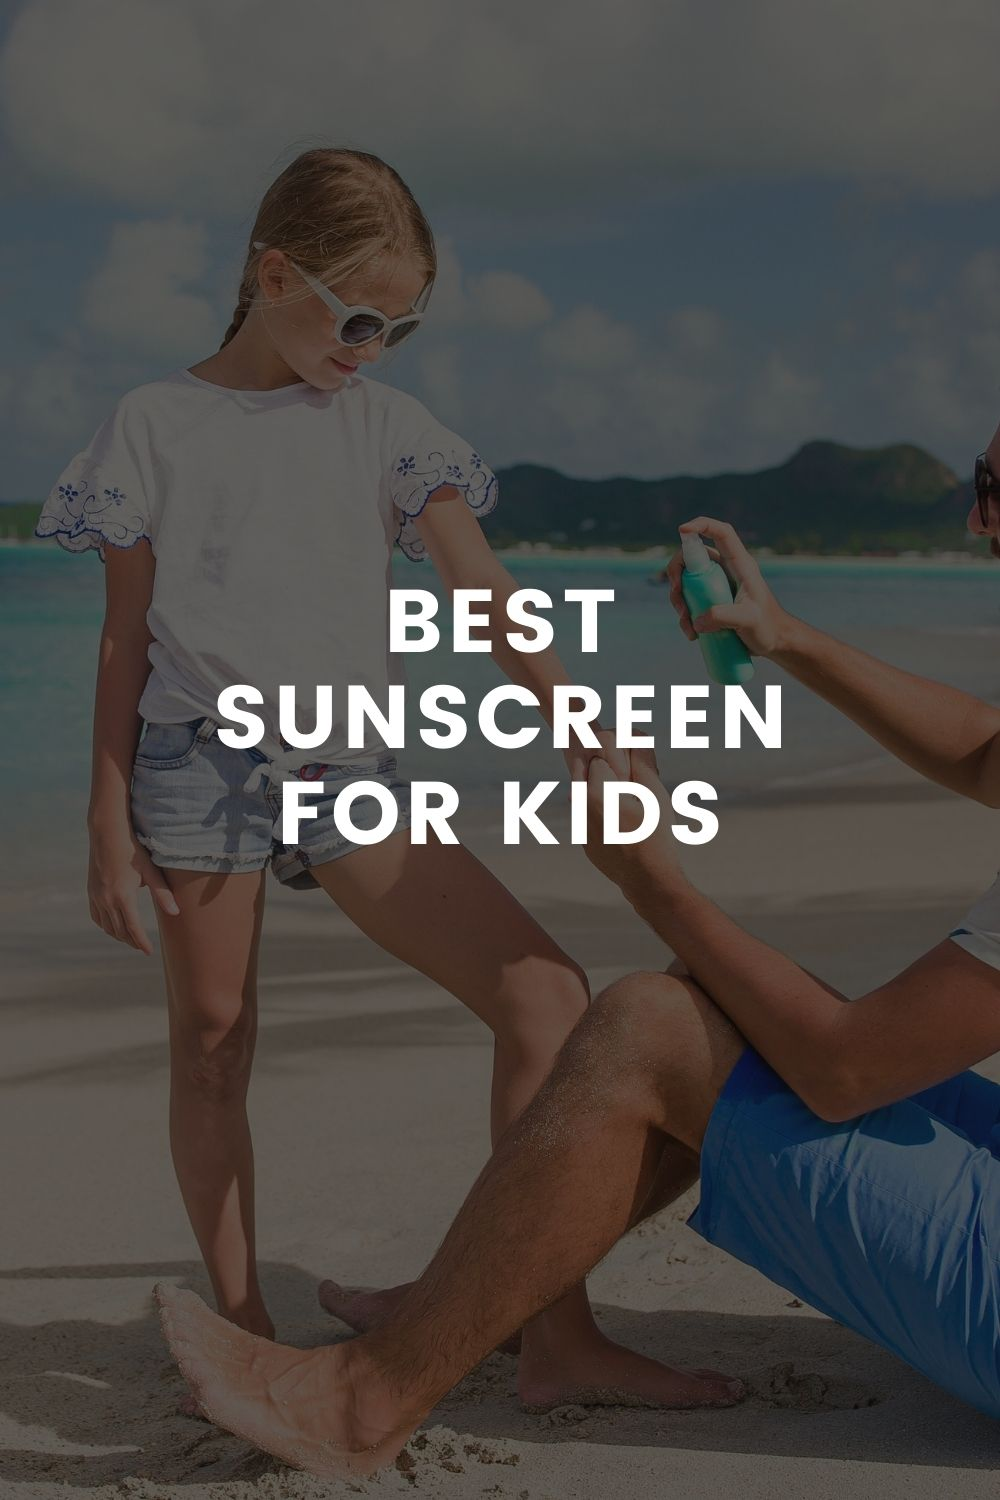 The Sunscreen for Kids